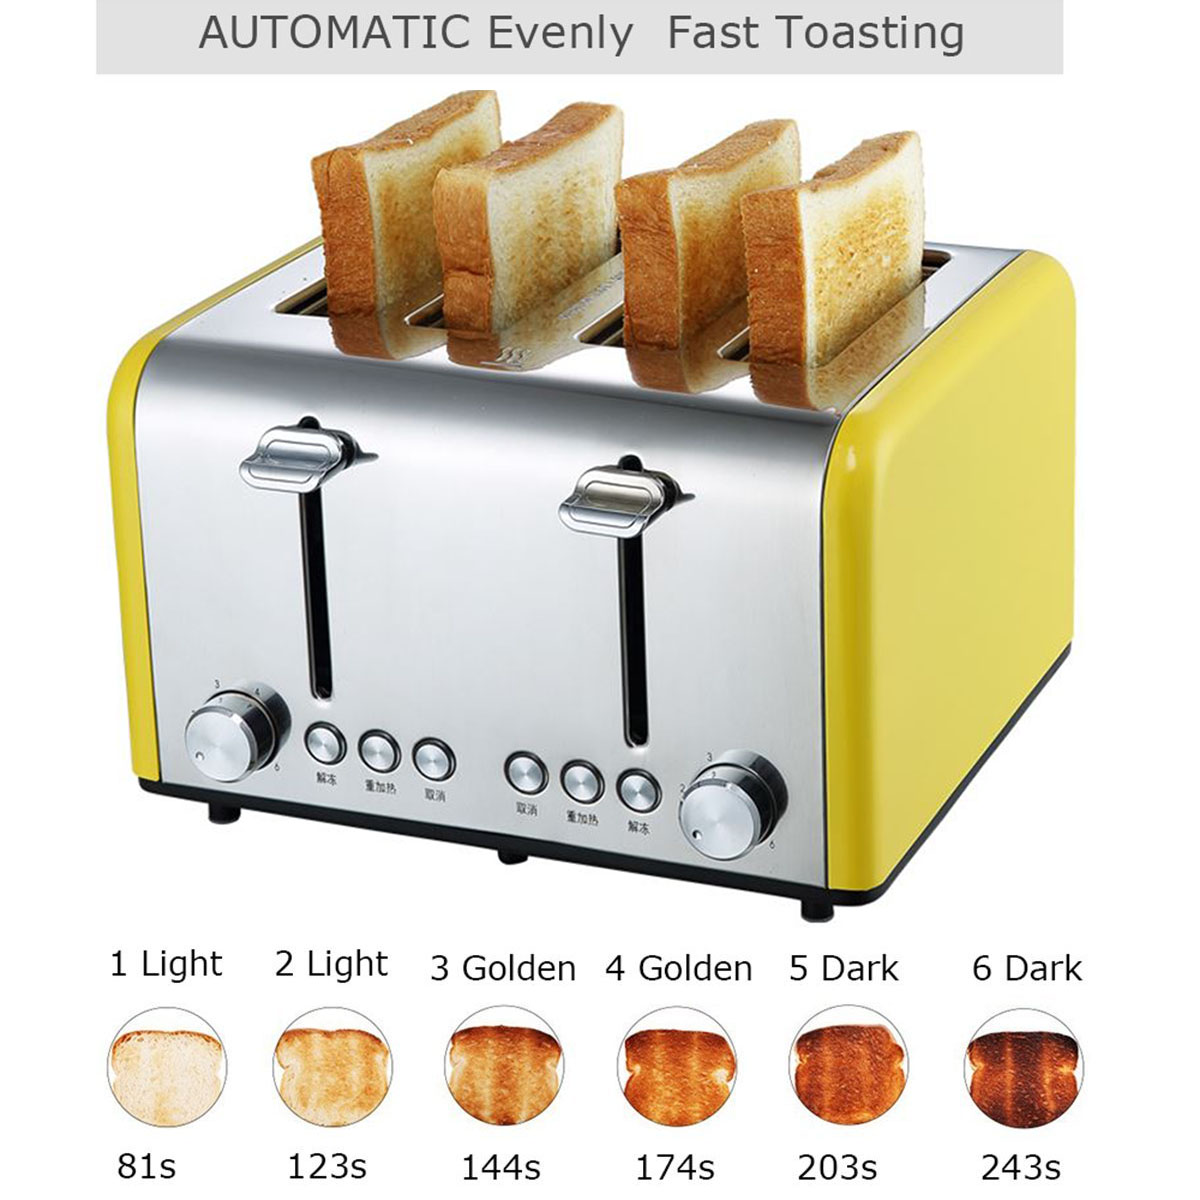 220V Stainless Steel Toaster Automatic Fast Heating Bread Sandwich Household Breakfast Maker Electric Toaster Wide Slot220V Stainless Steel Toaster Automatic Fast Heating Bread Sandwich Household Breakfast Maker Electric Toaster Wide Slot